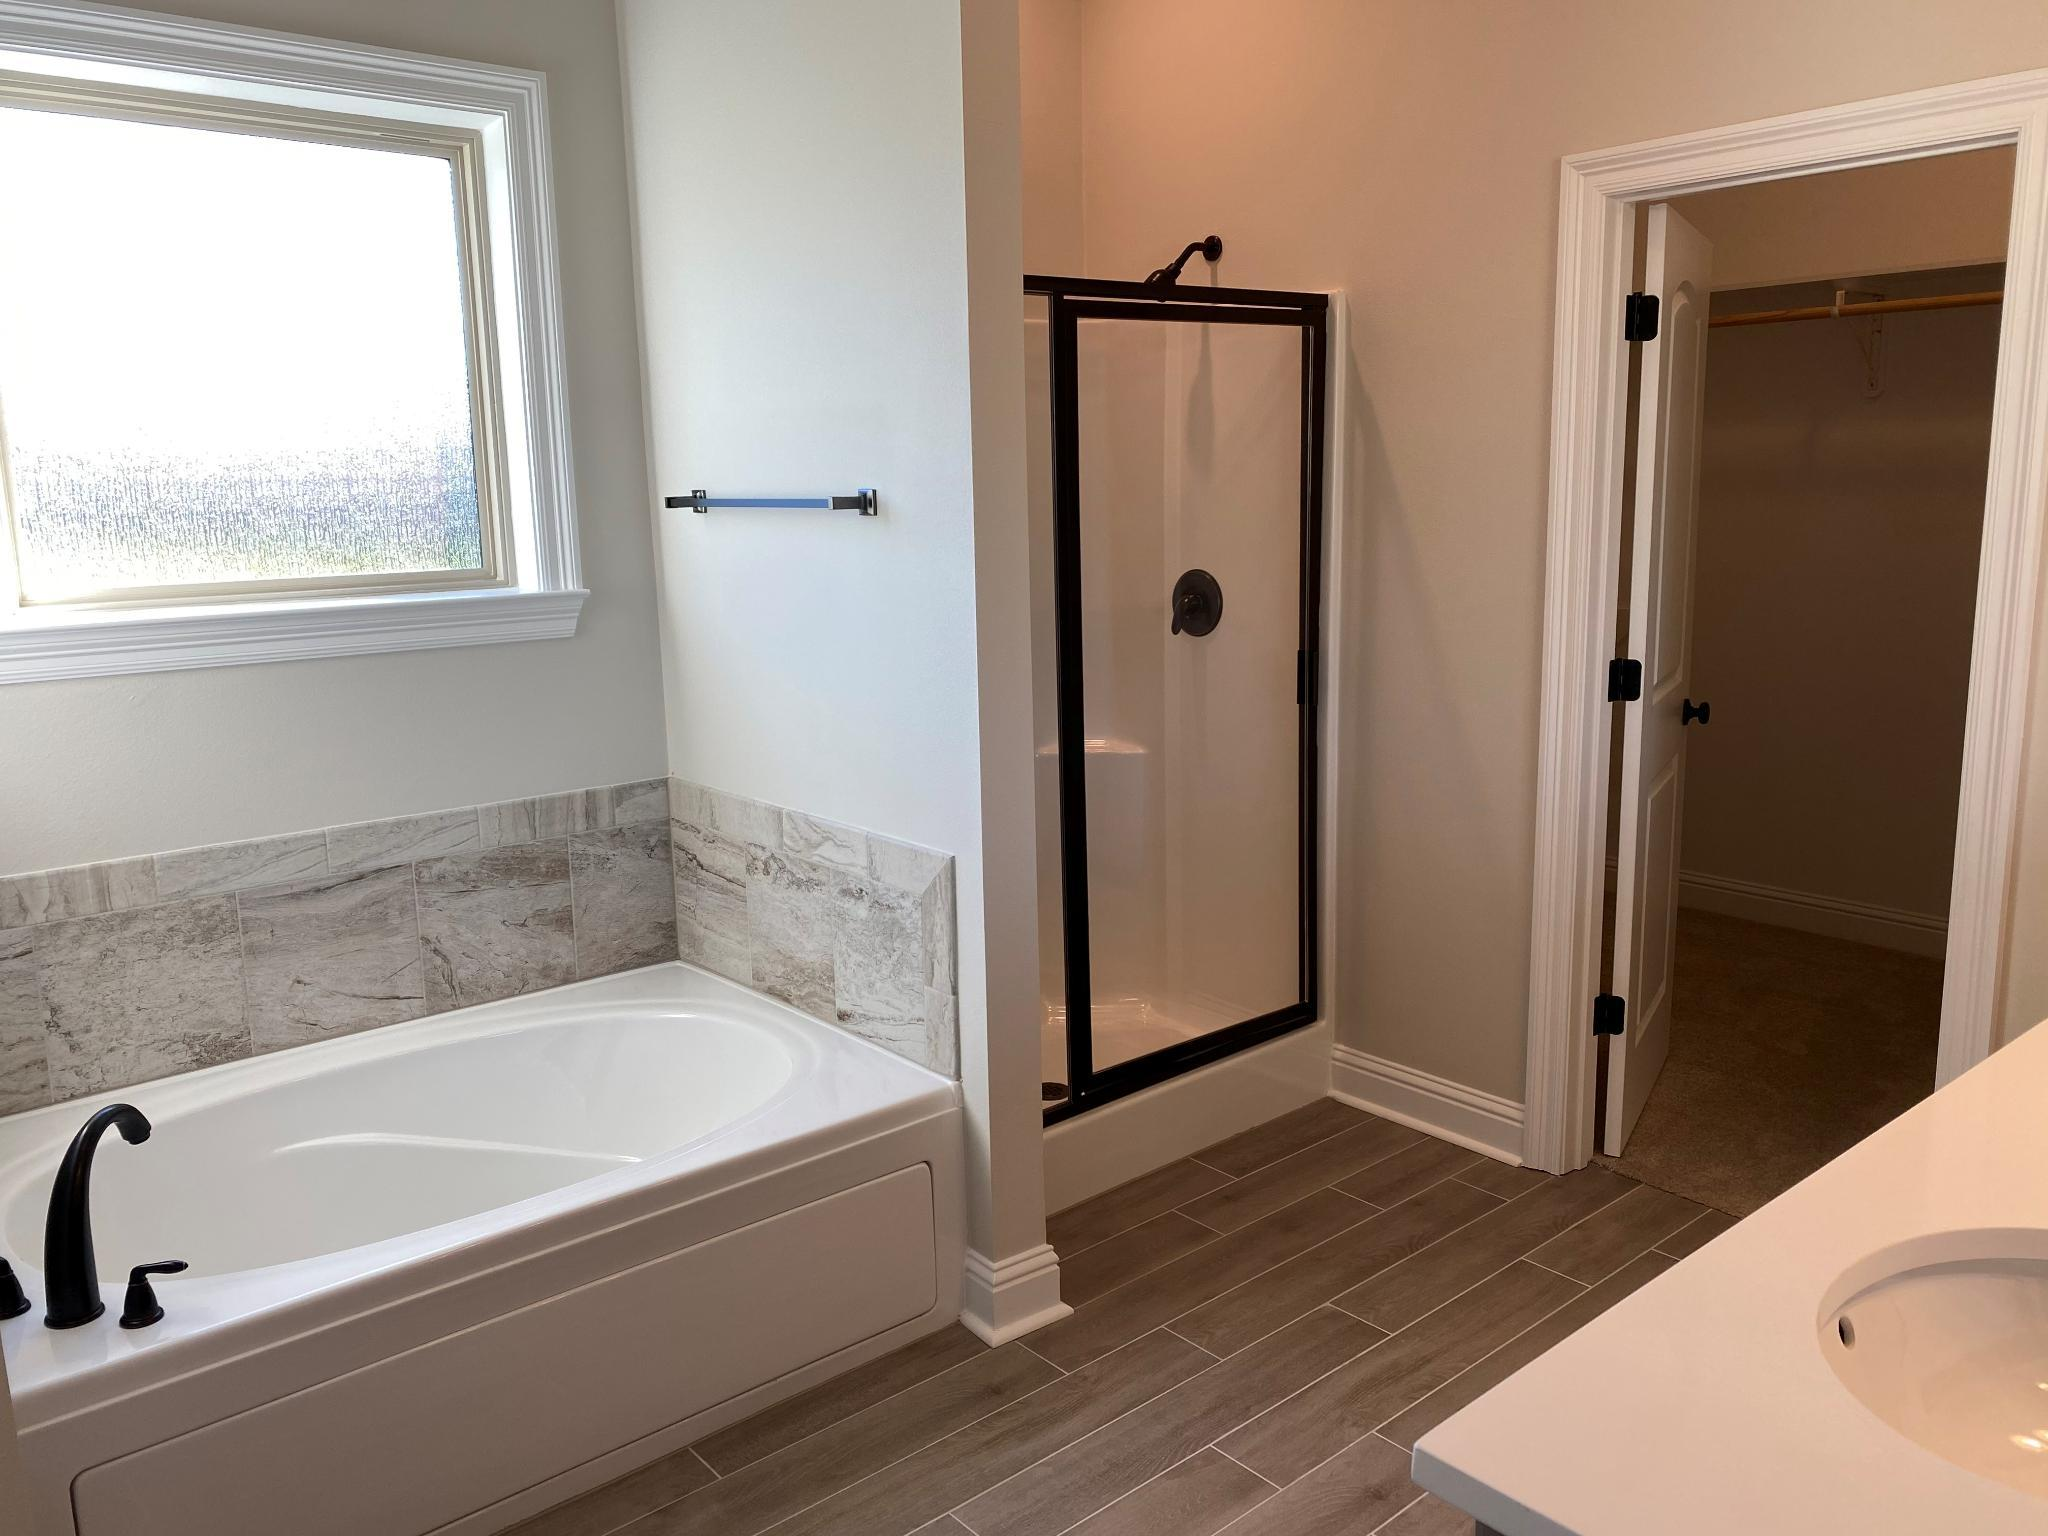 Bathroom featured in the 14461 STERLING OAKS DR. By DSLD Homes - Louisiana in Baton Rouge, LA